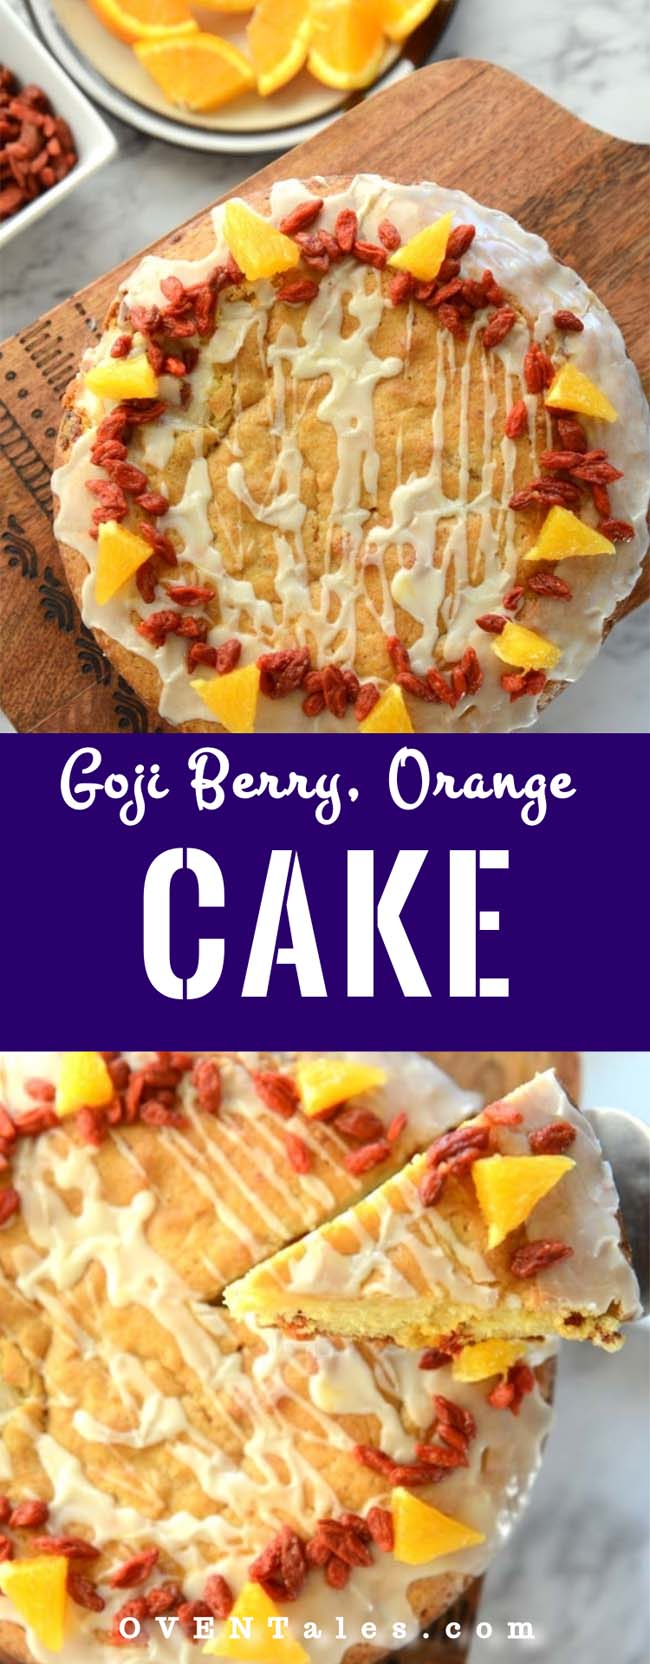 A delicious, moist citrus cake with the goodness of goji berries